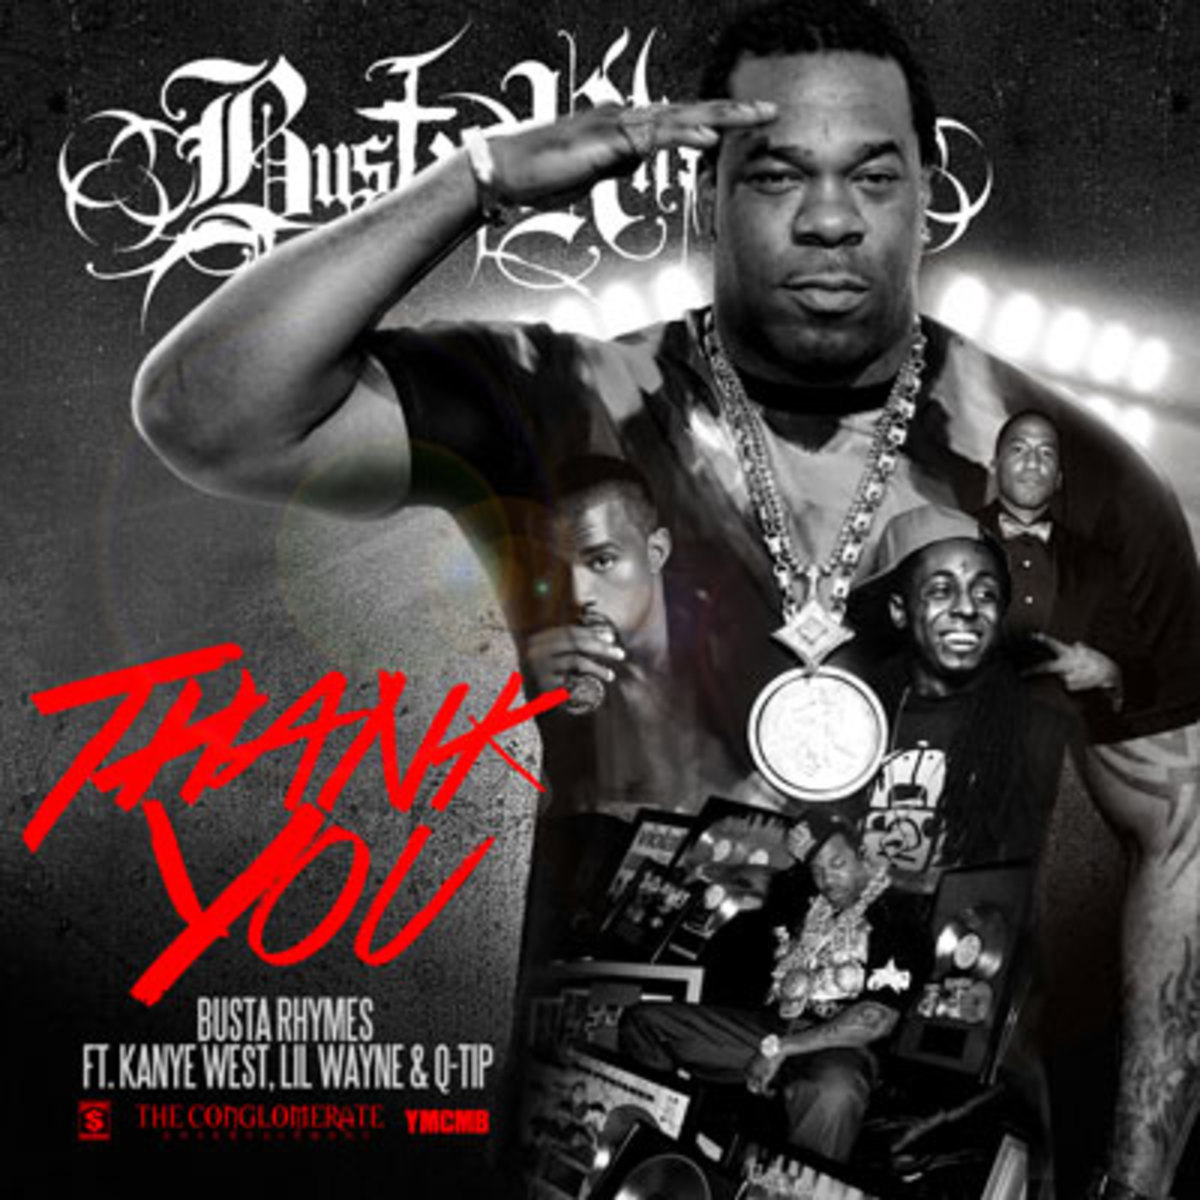 Tidal: watch thank you feat. Q-tip, kanye west & lil wayne on tidal.